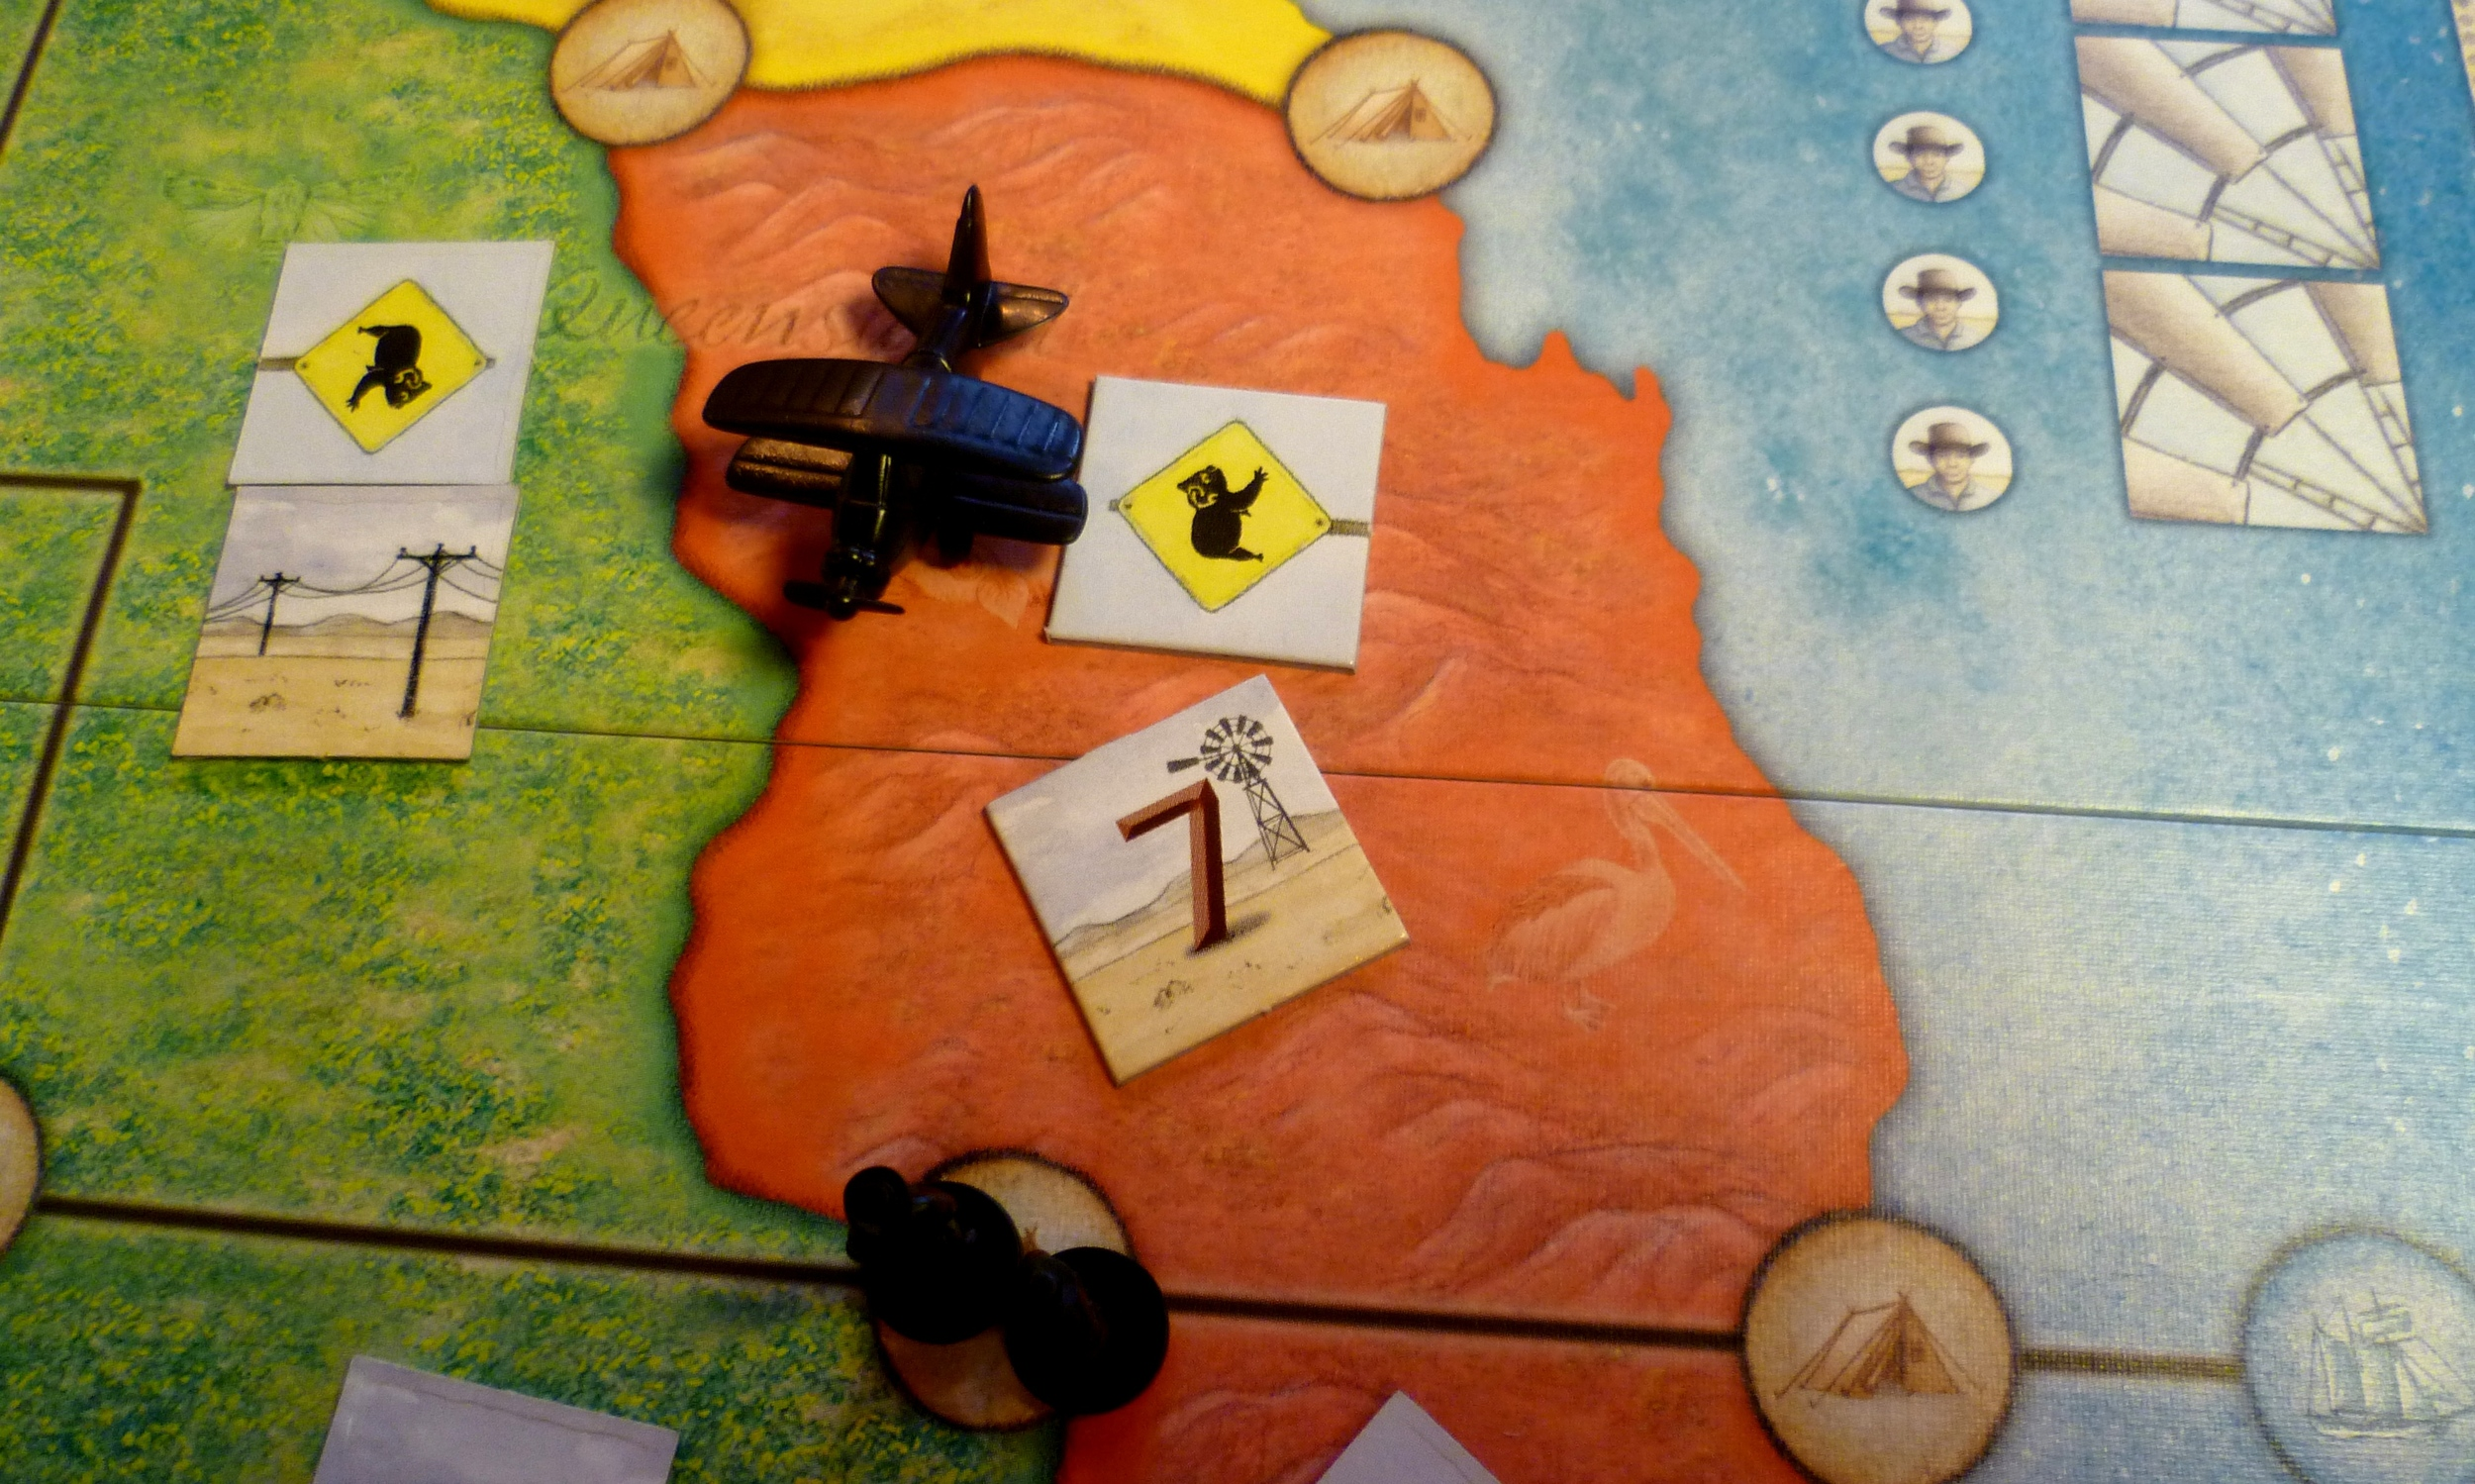 Black has flown toa red territory revealing the industry token and placing 2 men in the South Westerly Camp.